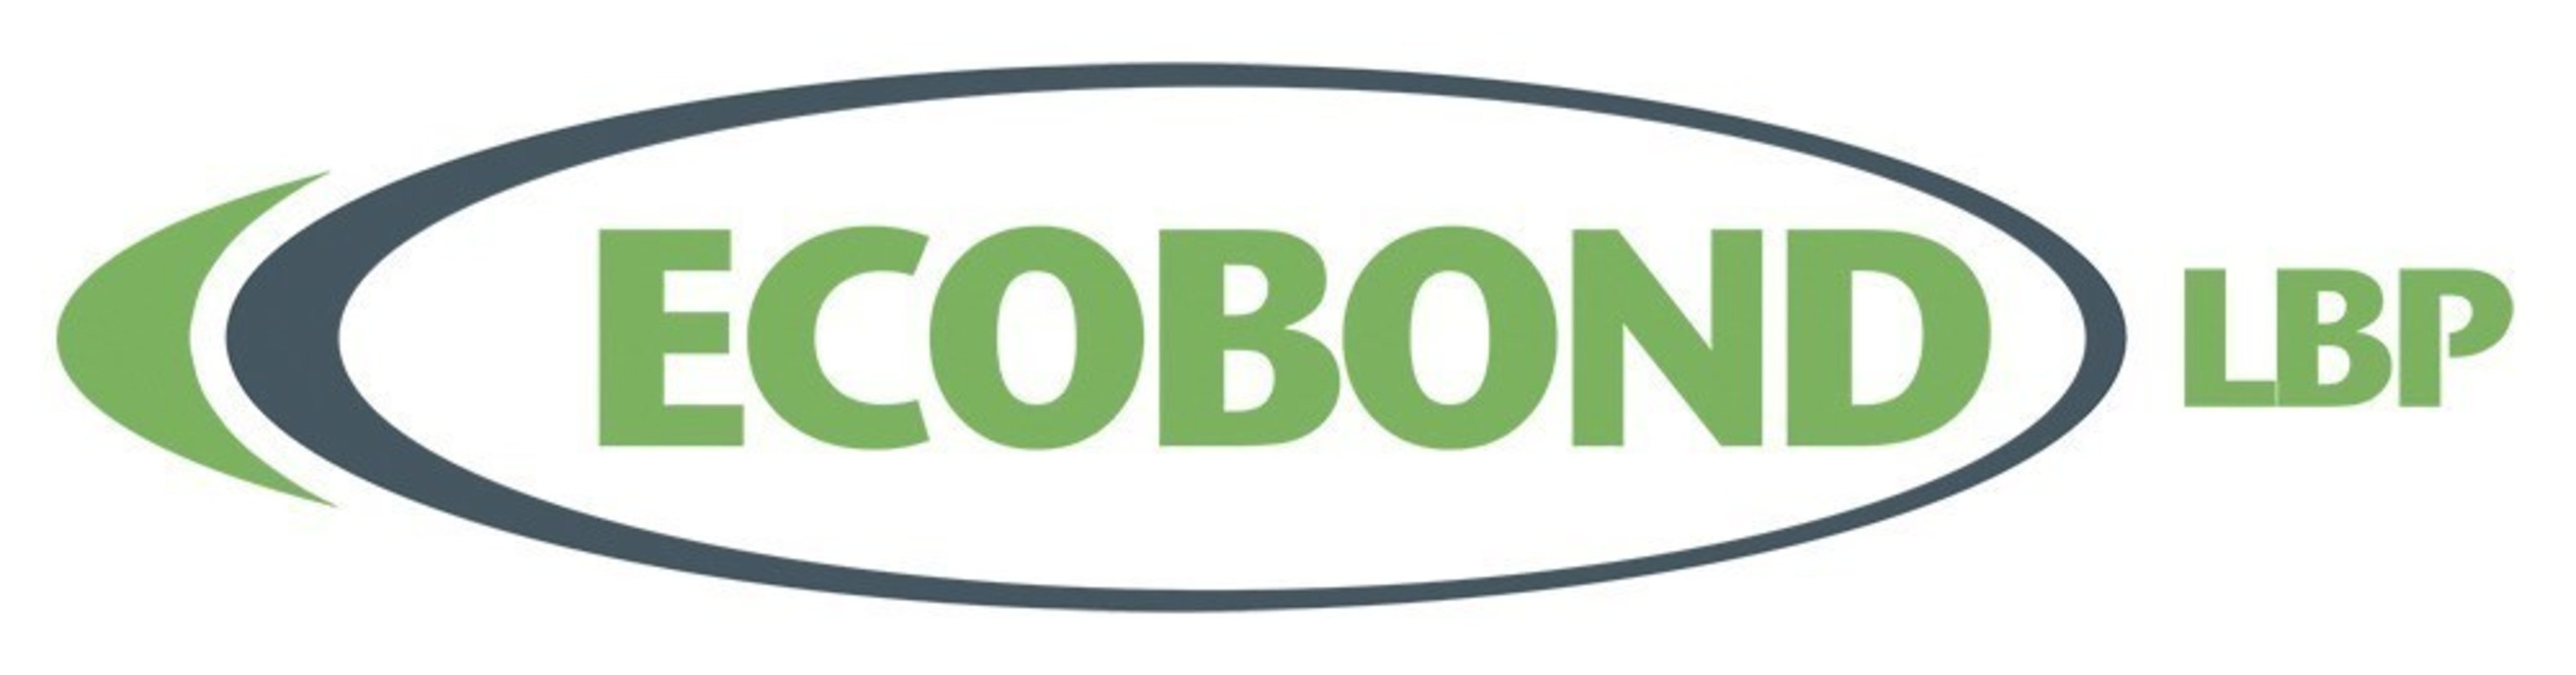 ECOBOND® LBP, Lead Paint Treatment, Officially Announced as a Global Green Building Leader by the